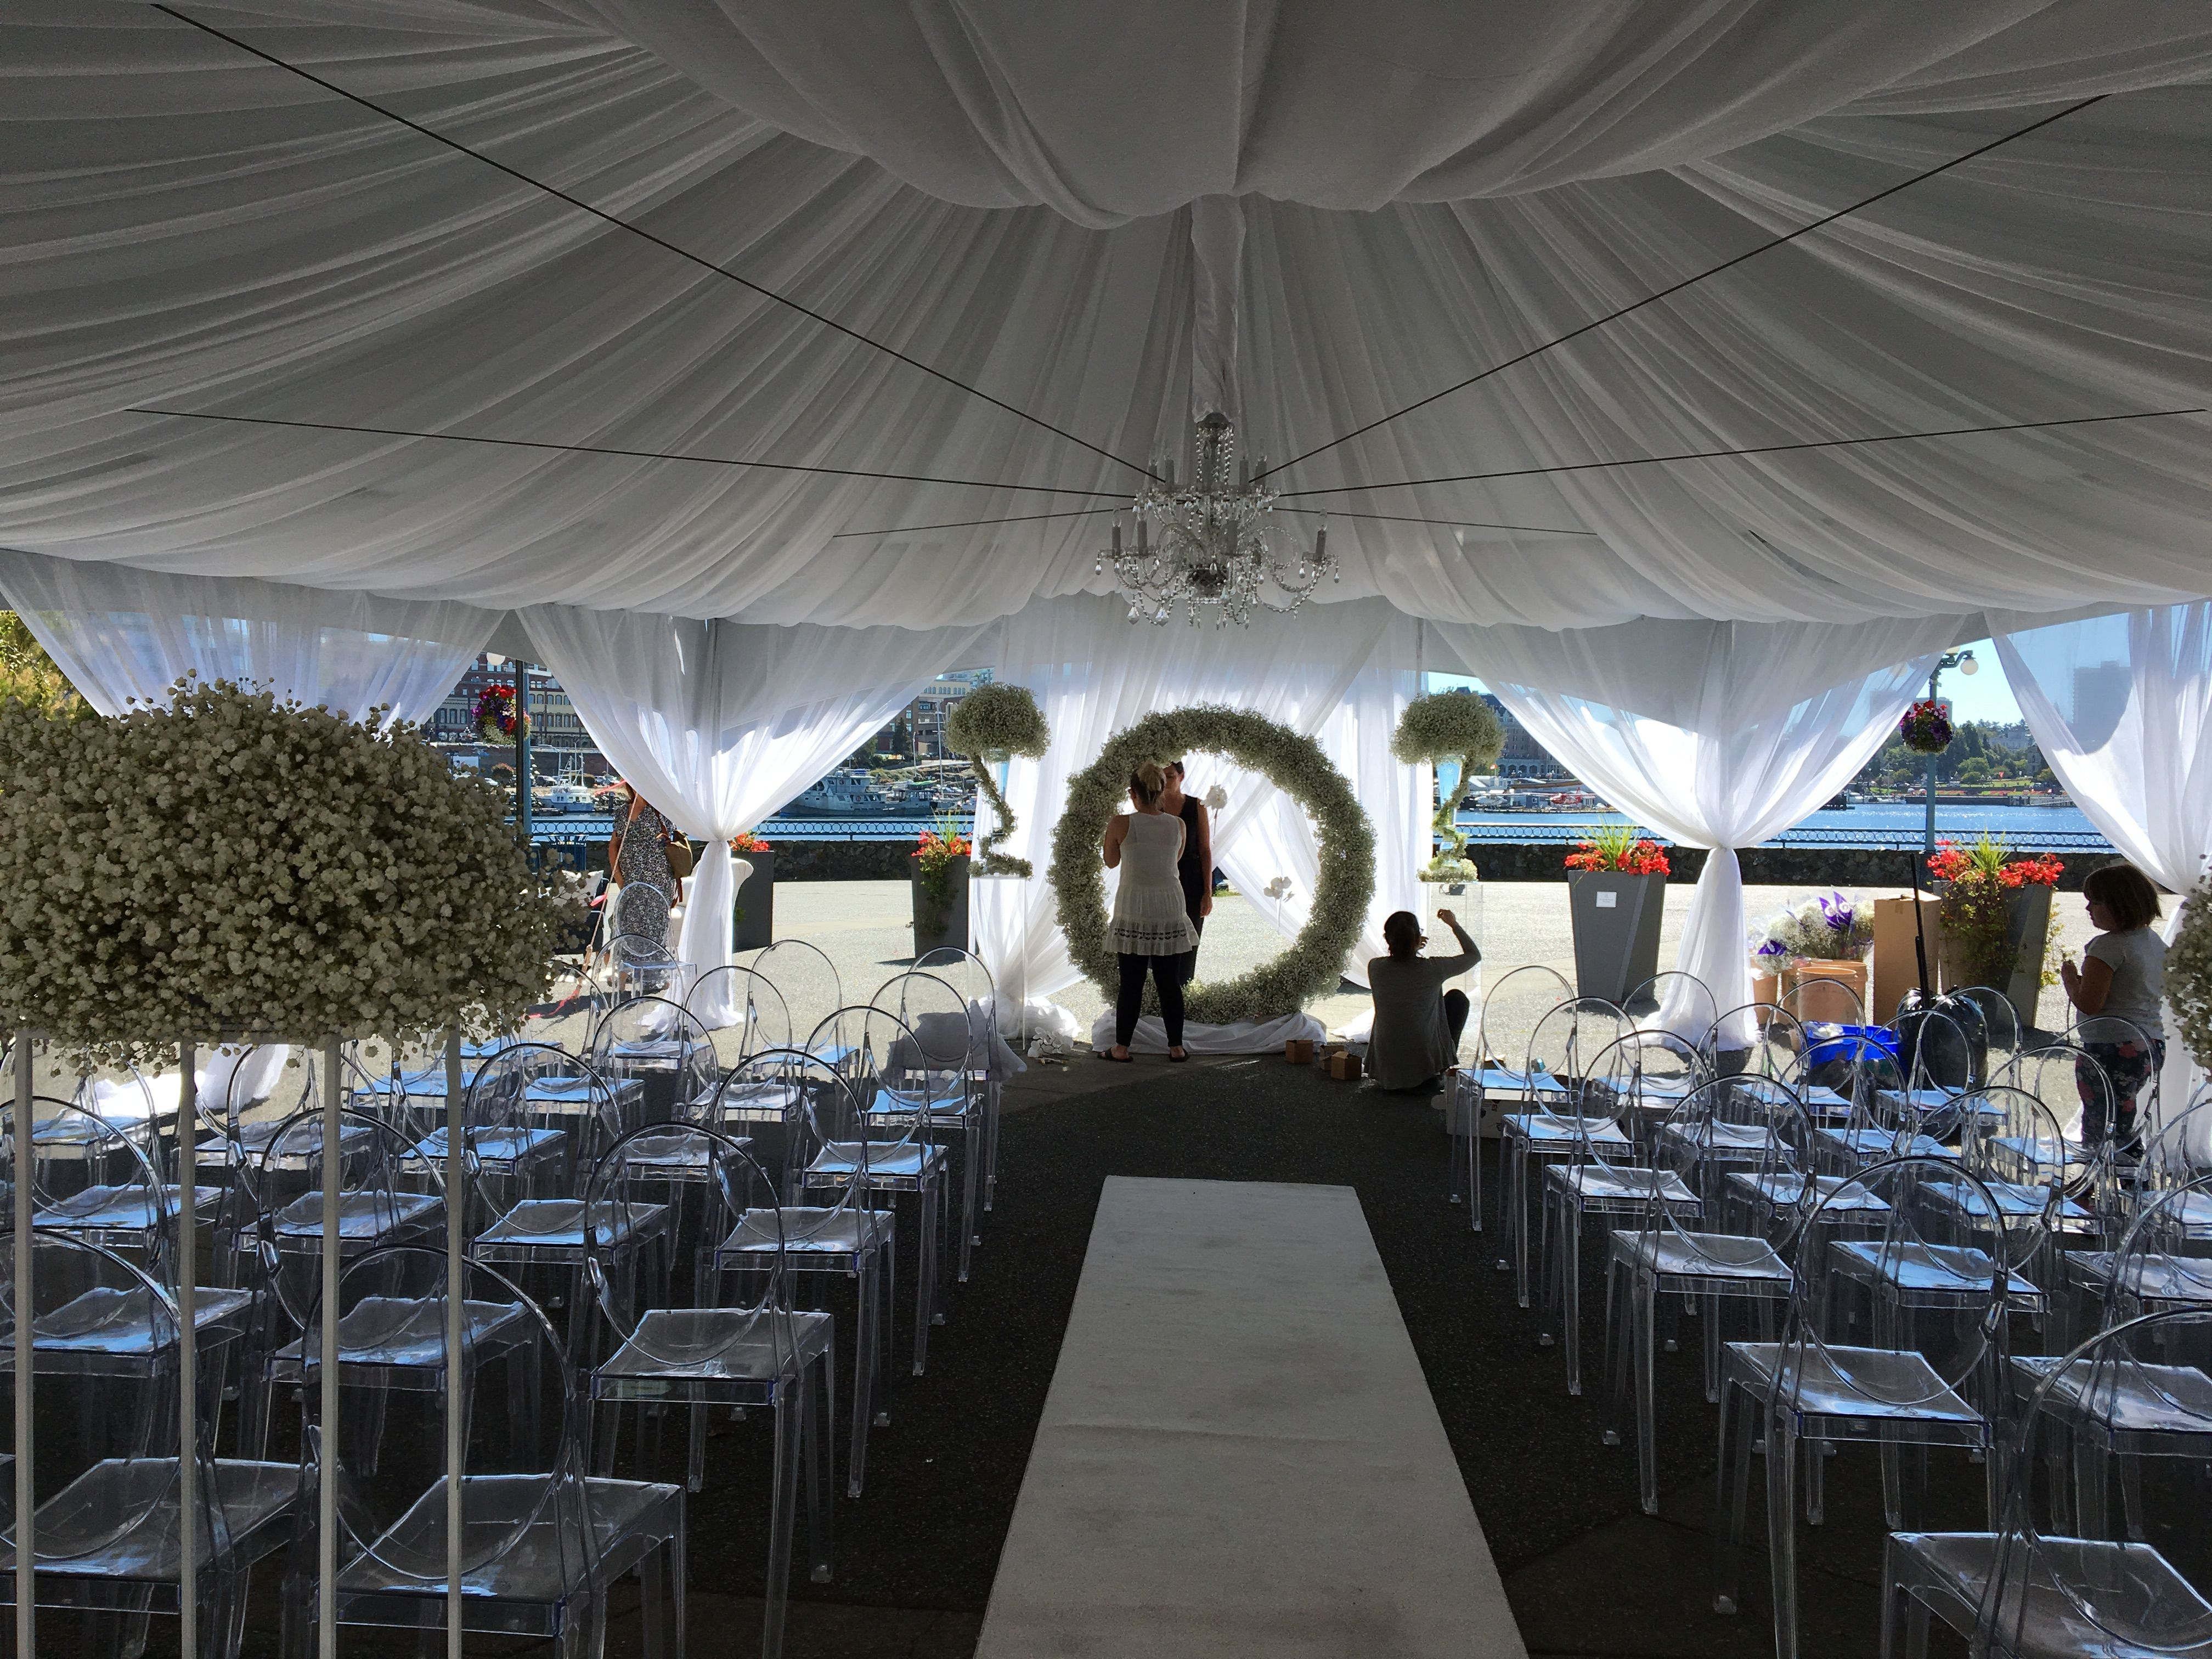 Wedding tent decoration images  Pin by Designer Weddings on Wedding Tent Decor  Pinterest